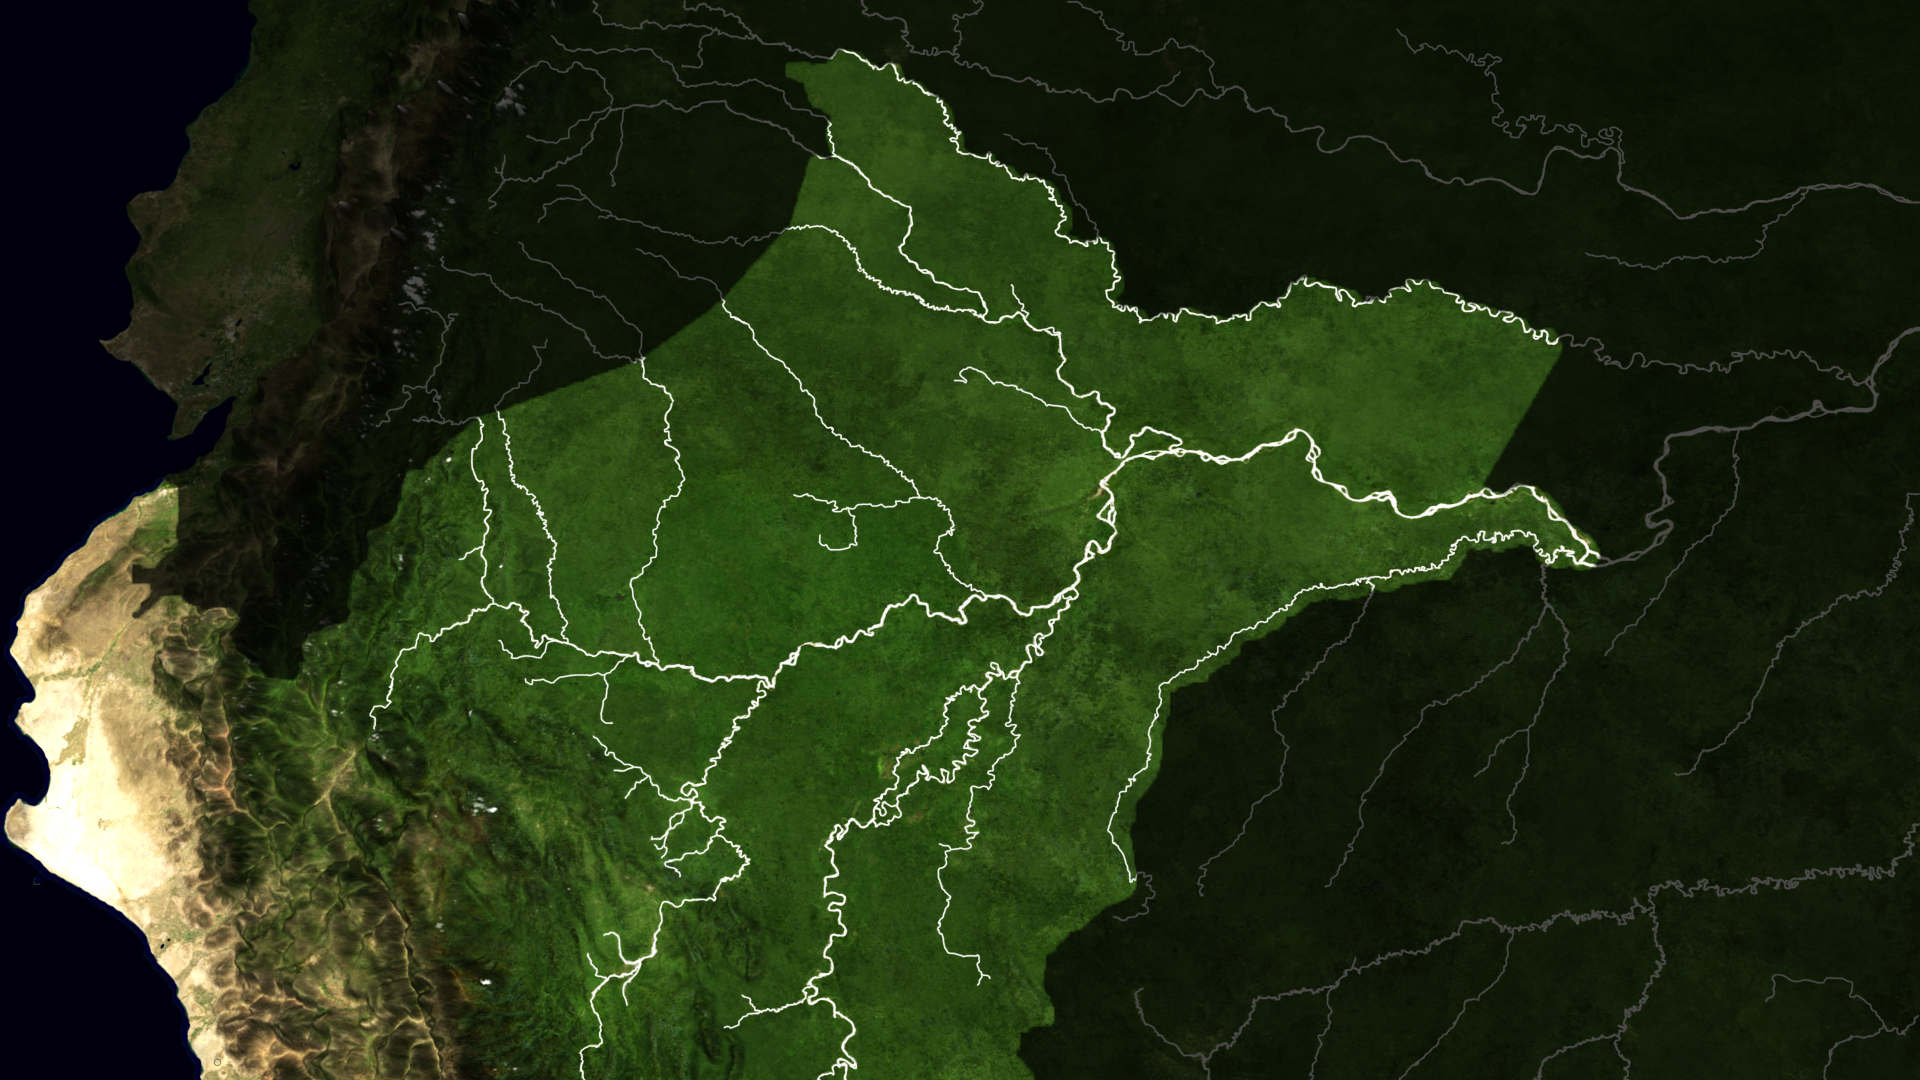 A Map Showing The Rivers The Peruvian Amazon And Surrounding Areas Precipitation And Other Environmental Conditions Affect River Height Which Can Impact